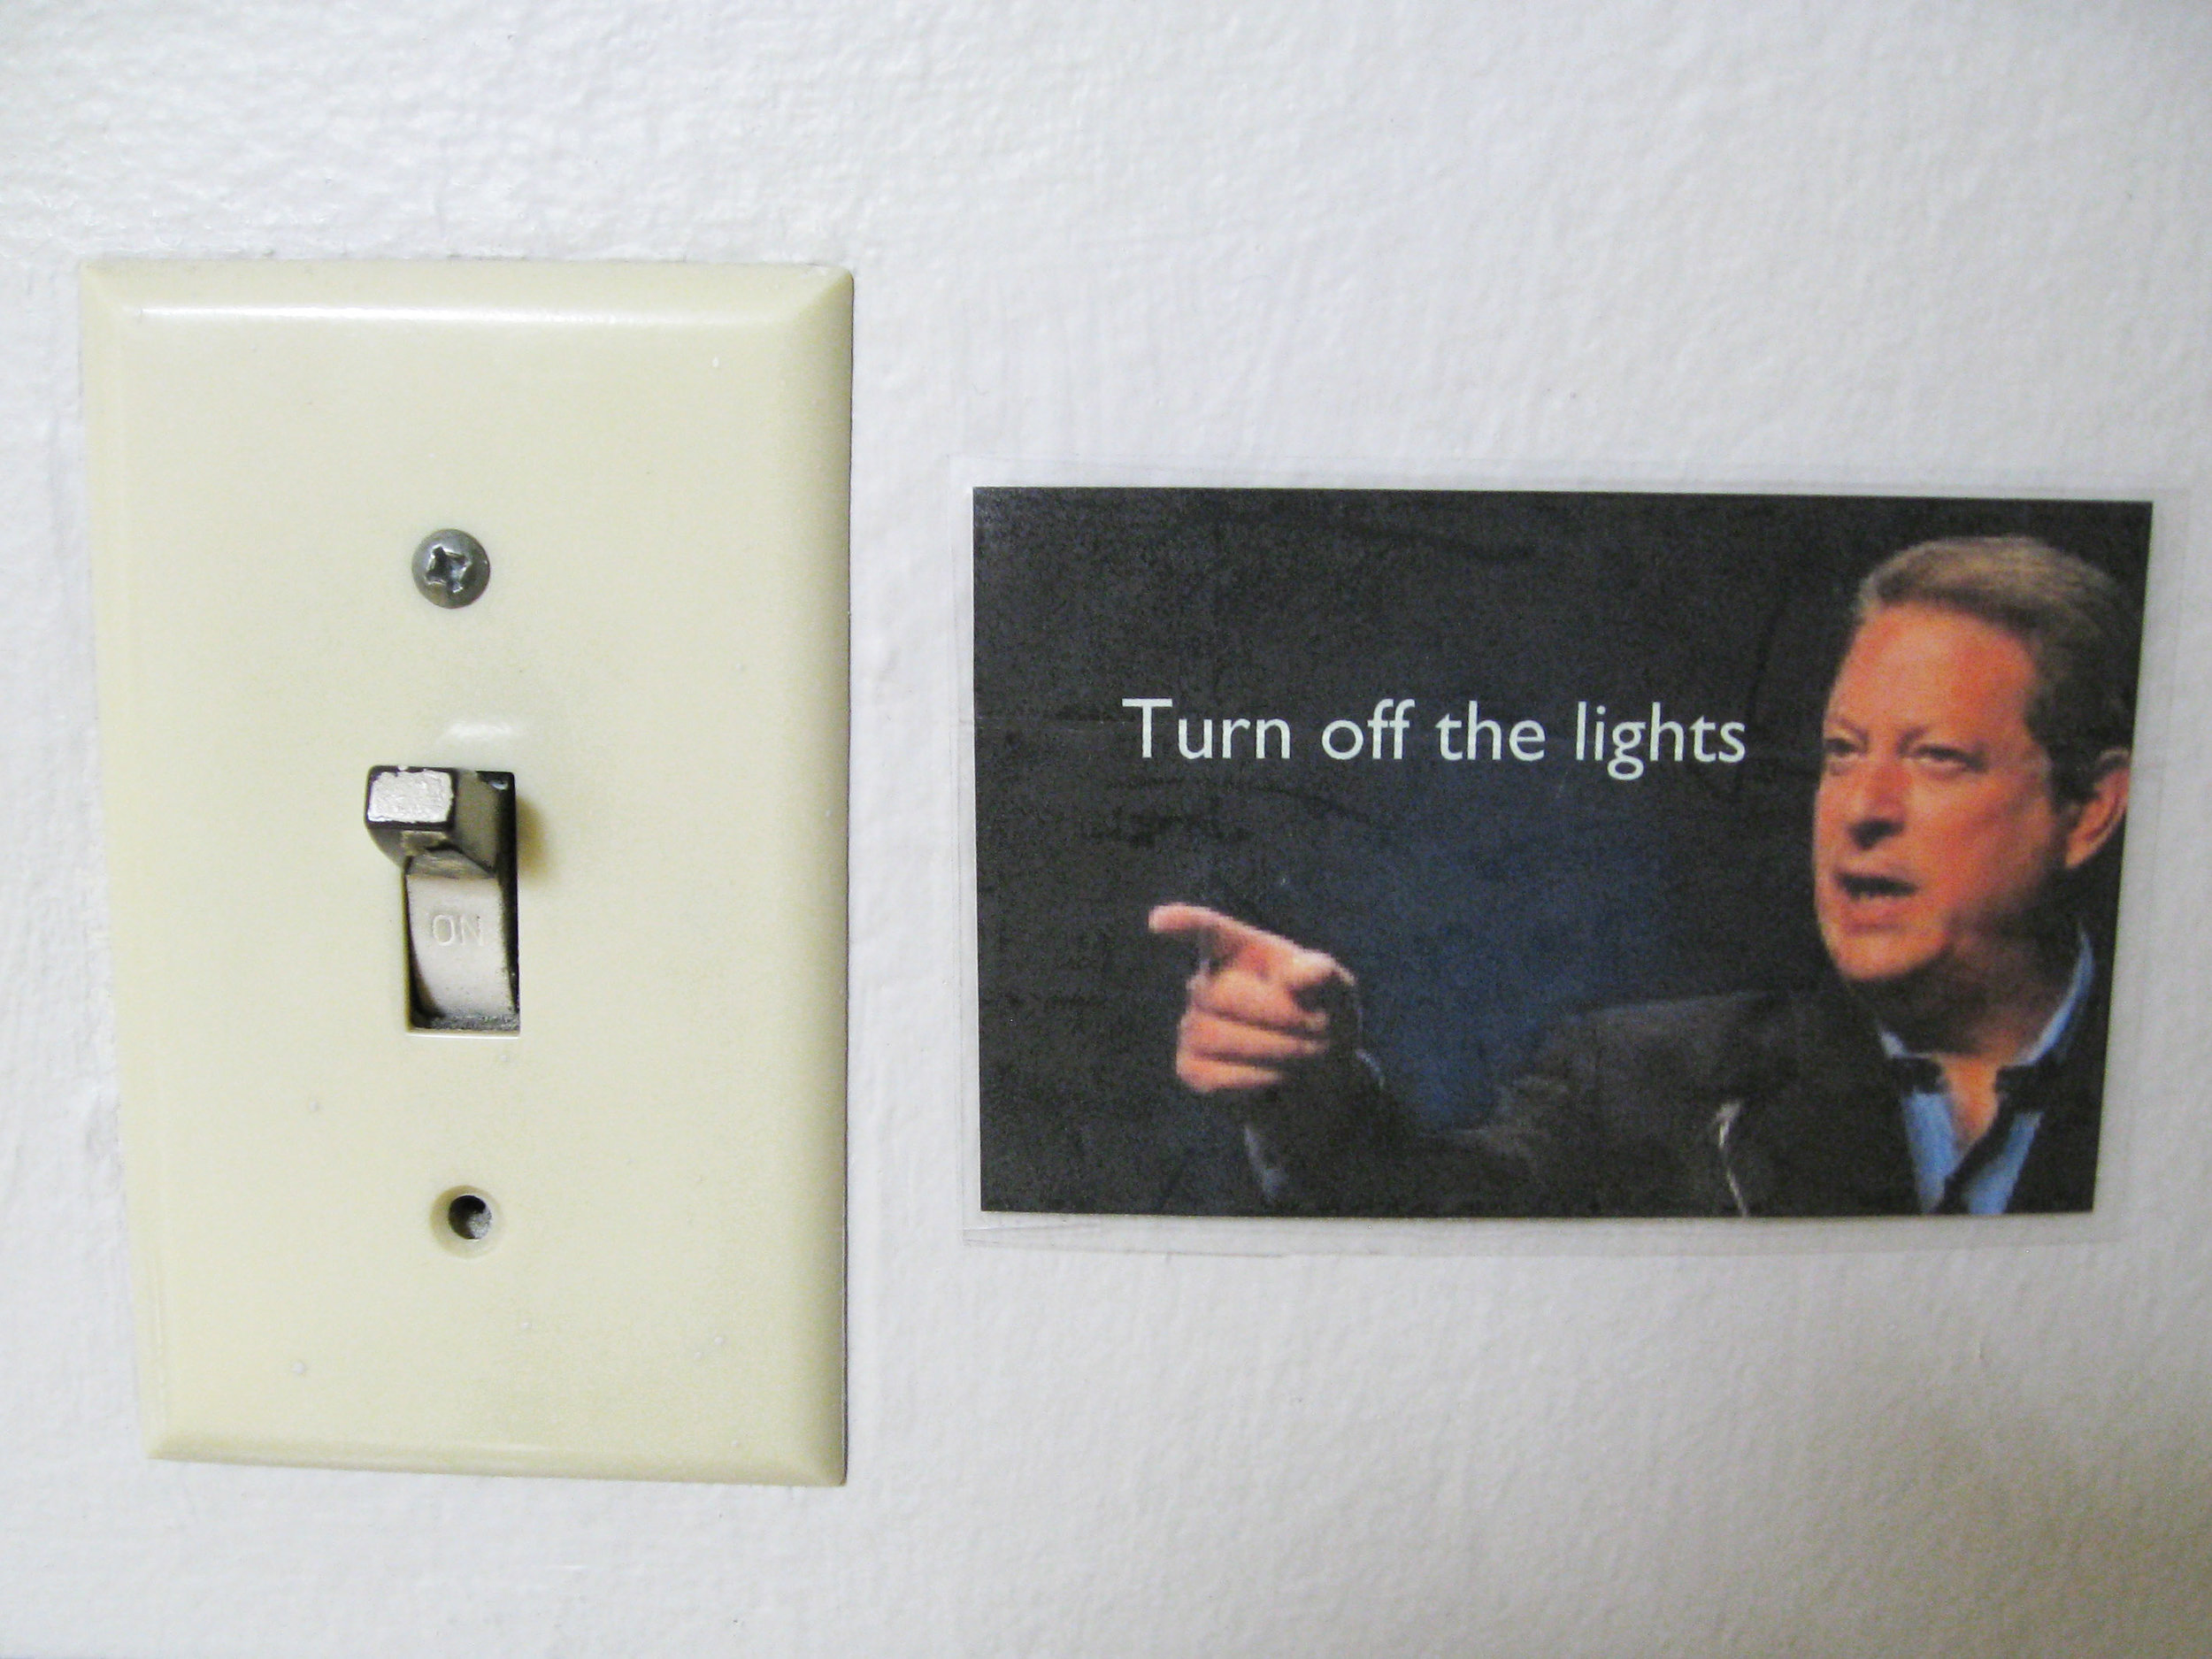 Al Gore reminds us to turn off the lights everyday